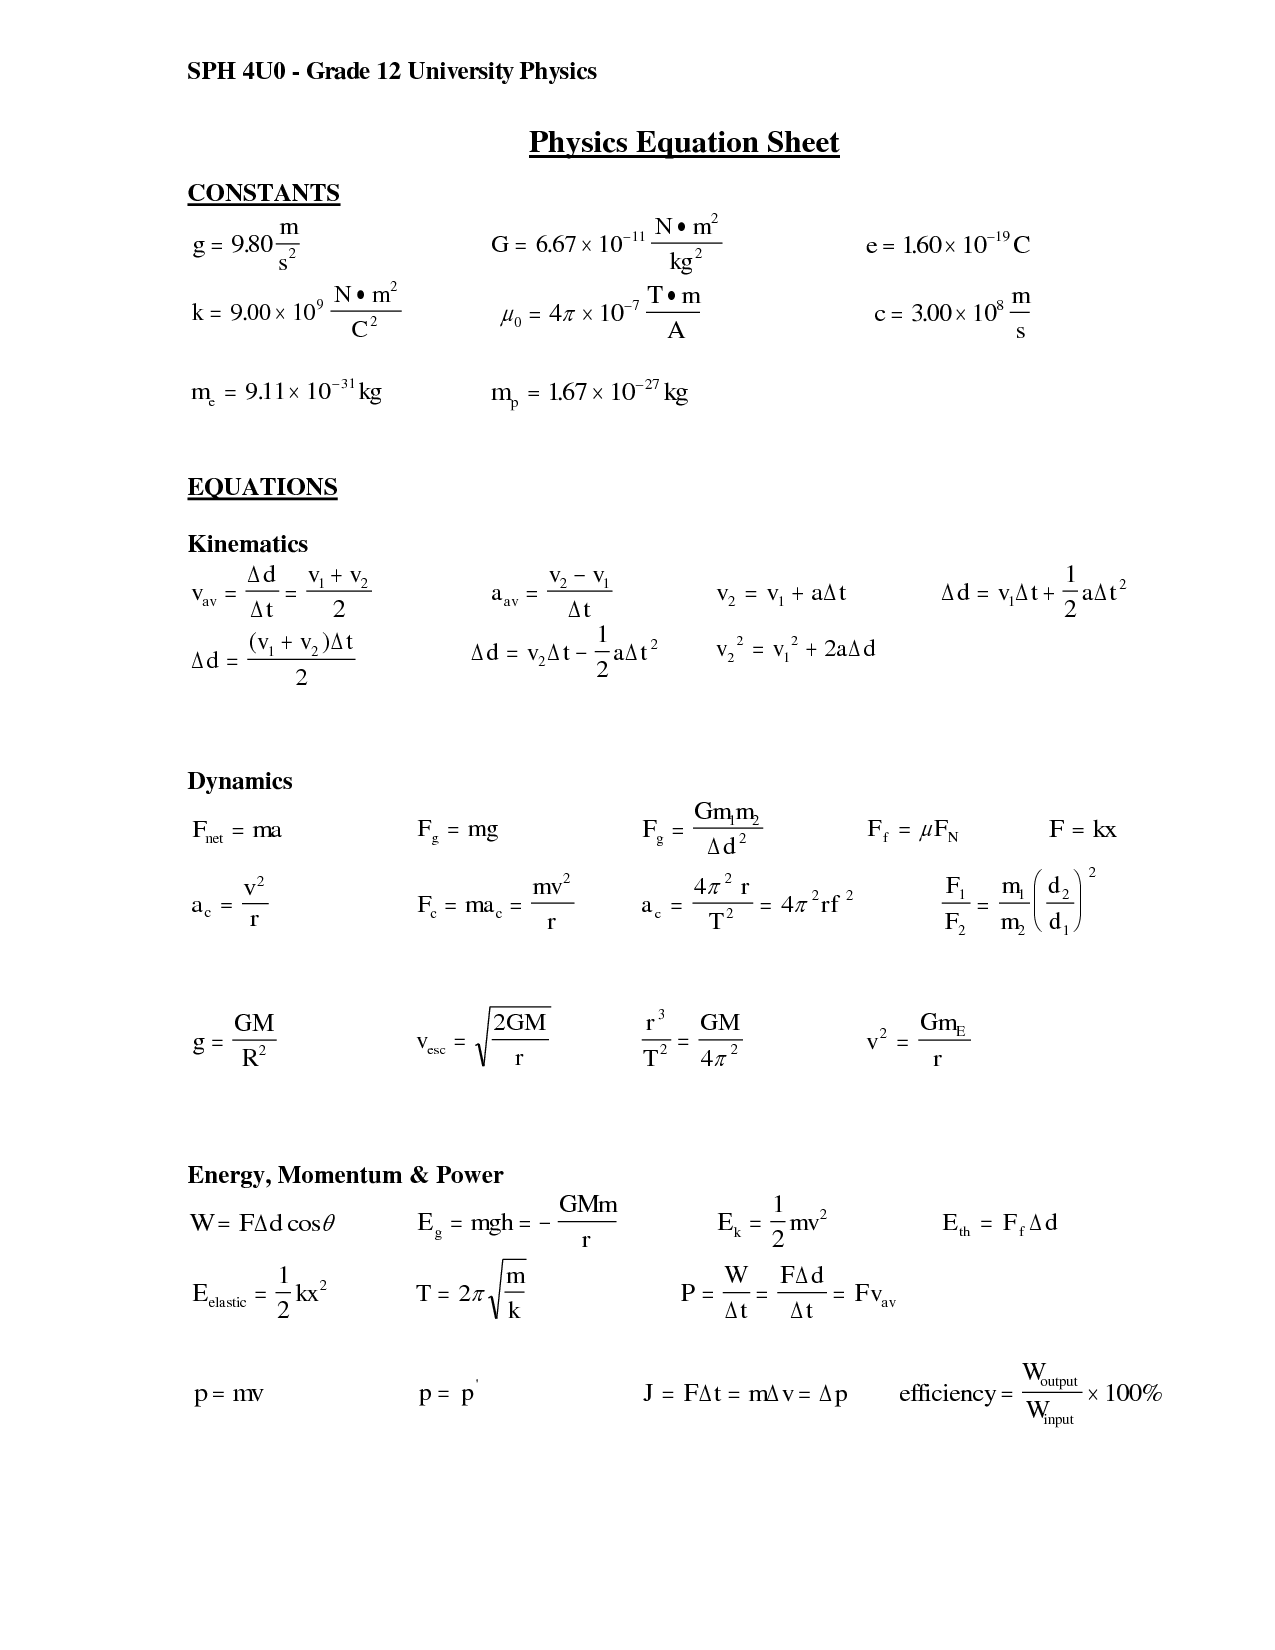 Basic Physics Worksheets   Printable Worksheets and Activities for  Teachers [ 1650 x 1275 Pixel ]